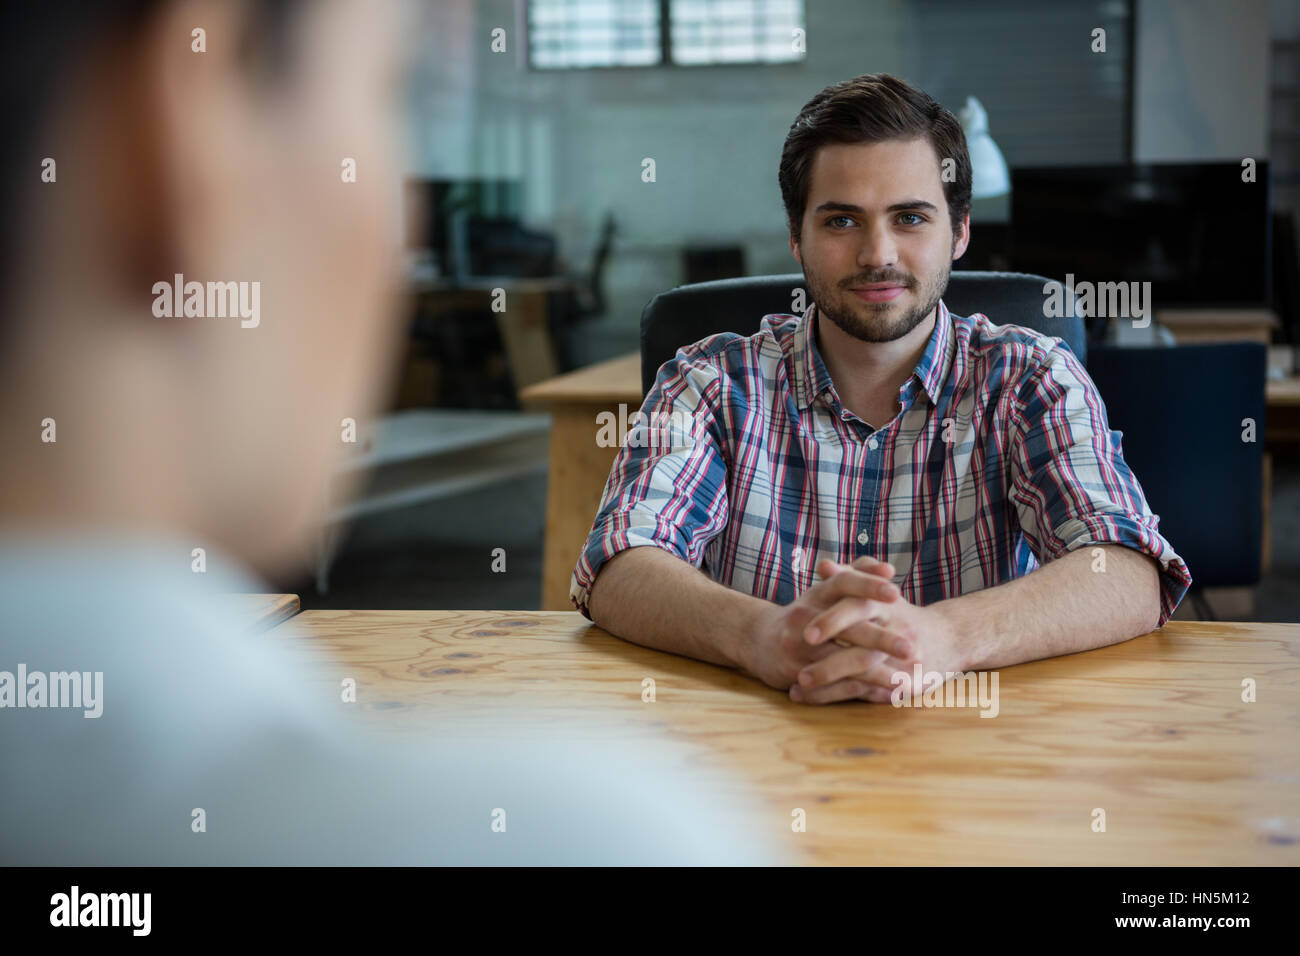 Business executive conducting job interview with woman in office - Stock Image